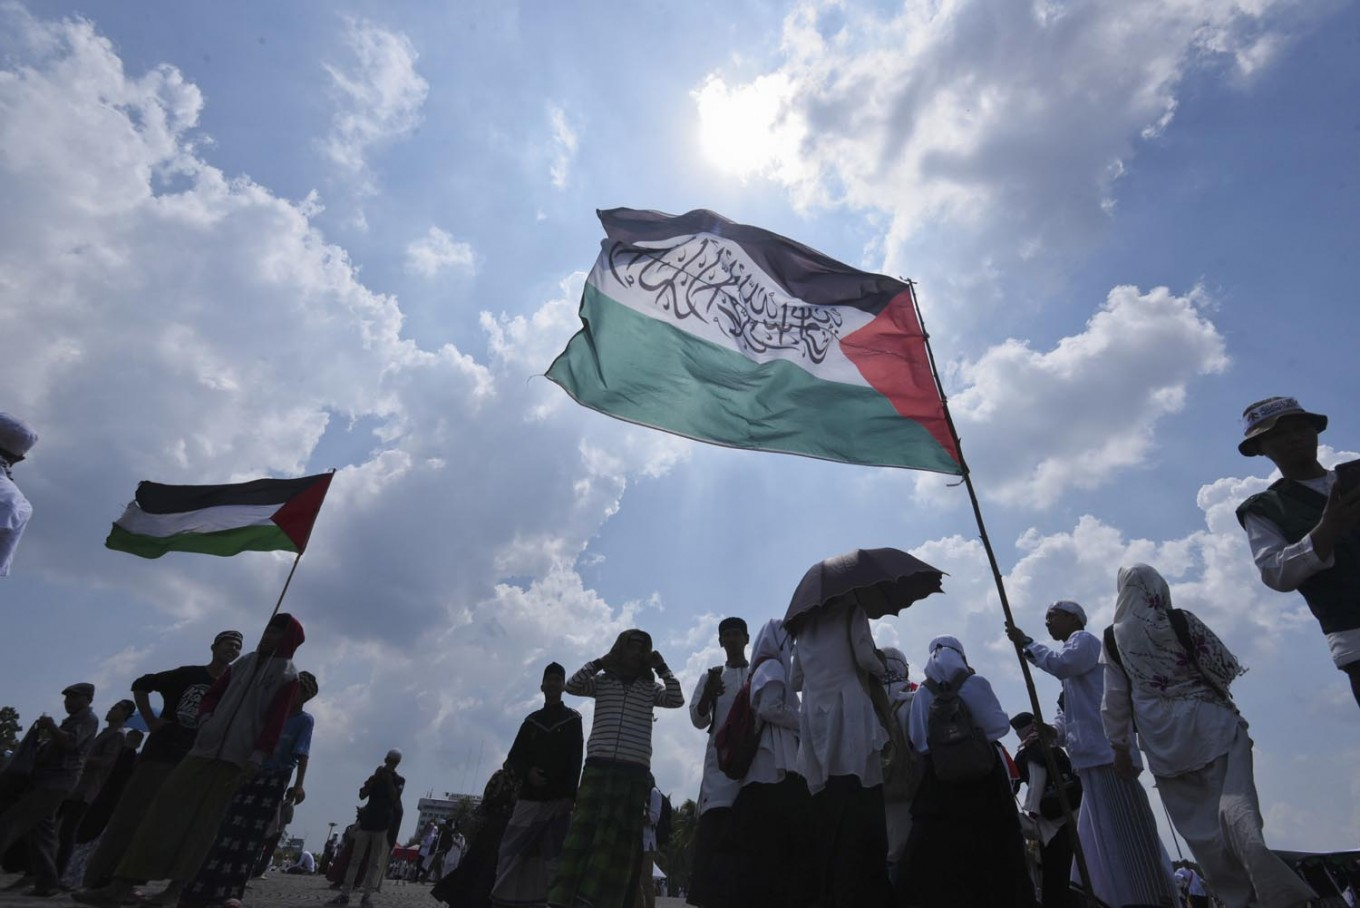 Anies attends rally for Palestinian independence